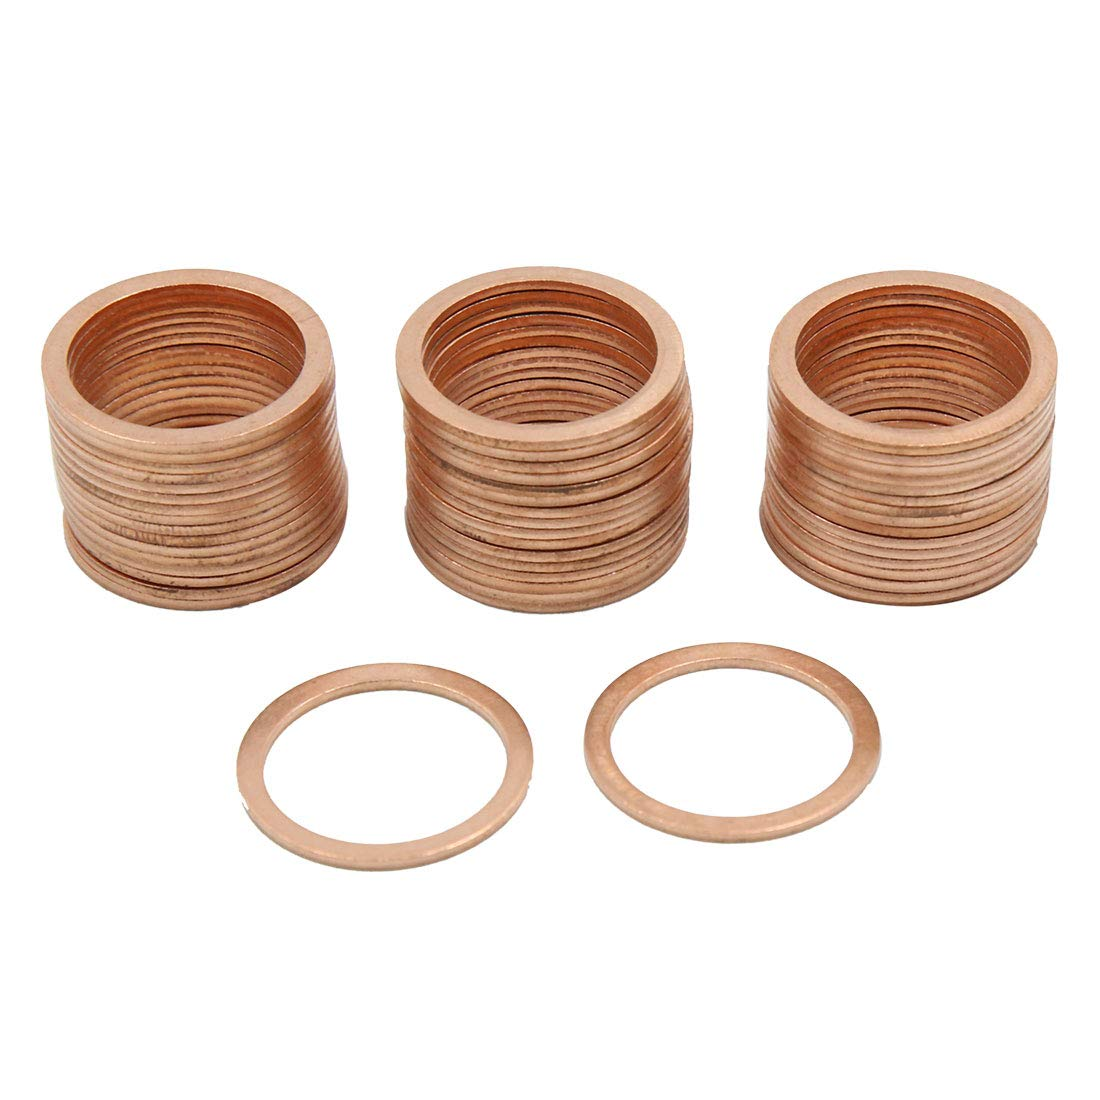 X AUTOHAUX 18mm Inner Dia Copper Crush Washers Flat Car Sealing Plate Gaskets Rings 50pcs by X AUTOHAUX (Image #1)